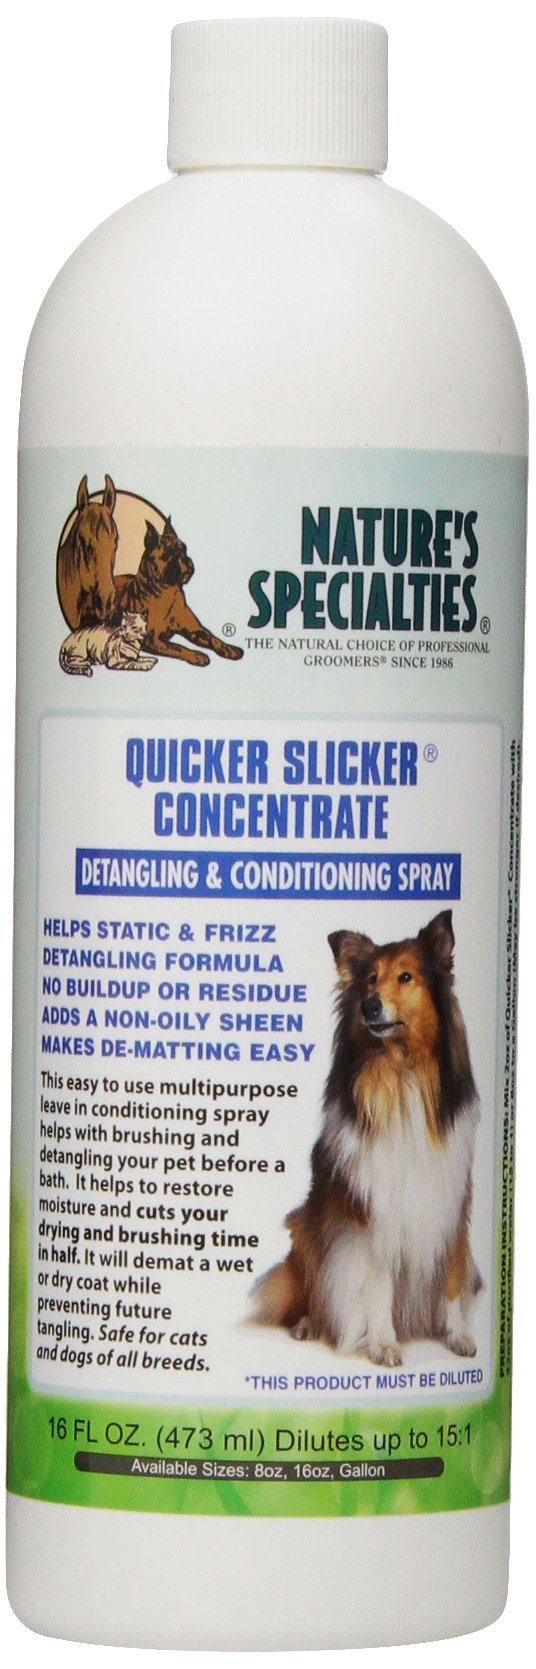 Nature's Specialties Quicker Slicker Concentrate Pet Conditioner, 16-Ounce by Nature's Specialties Mfg